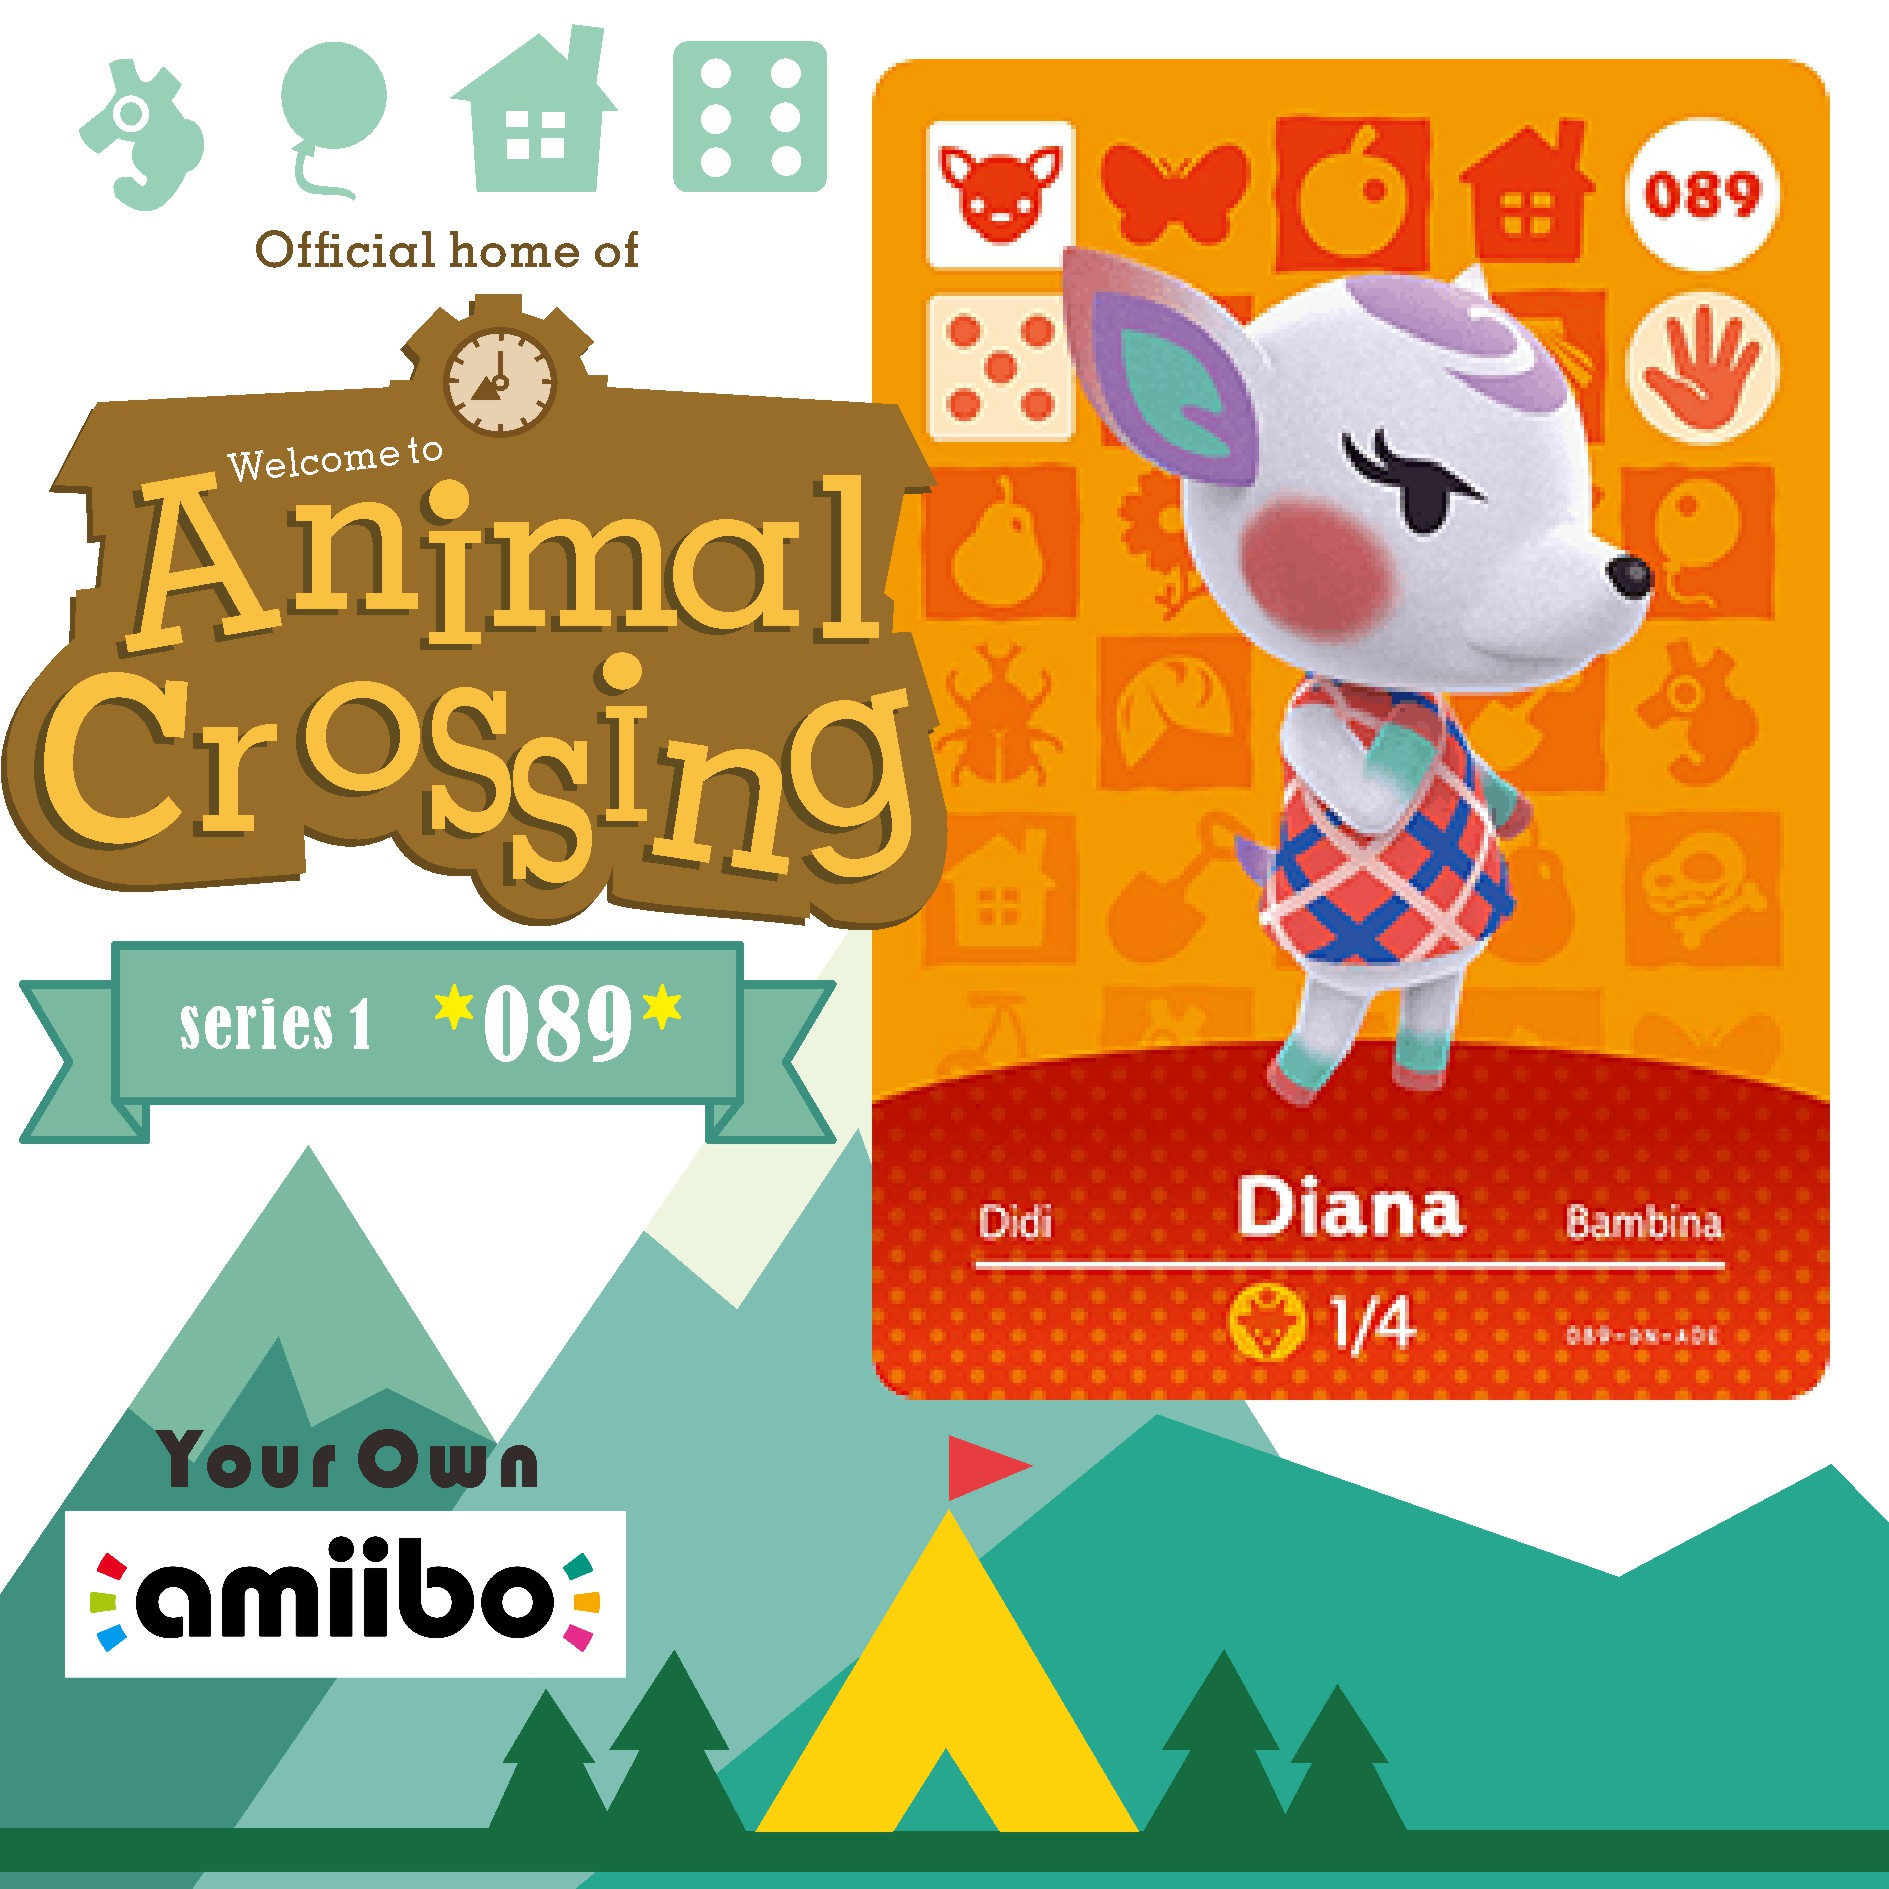 Hot 089 <font><b>Amiibo</b></font> Animal Crossing Diana Animal Crossing <font><b>Amiibo</b></font> Diana Villager <font><b>Amiibo</b></font> <font><b>Card</b></font> New Horizons <font><b>NFC</b></font> <font><b>Card</b></font> for Nintendo <font><b>Switch</b></font> image